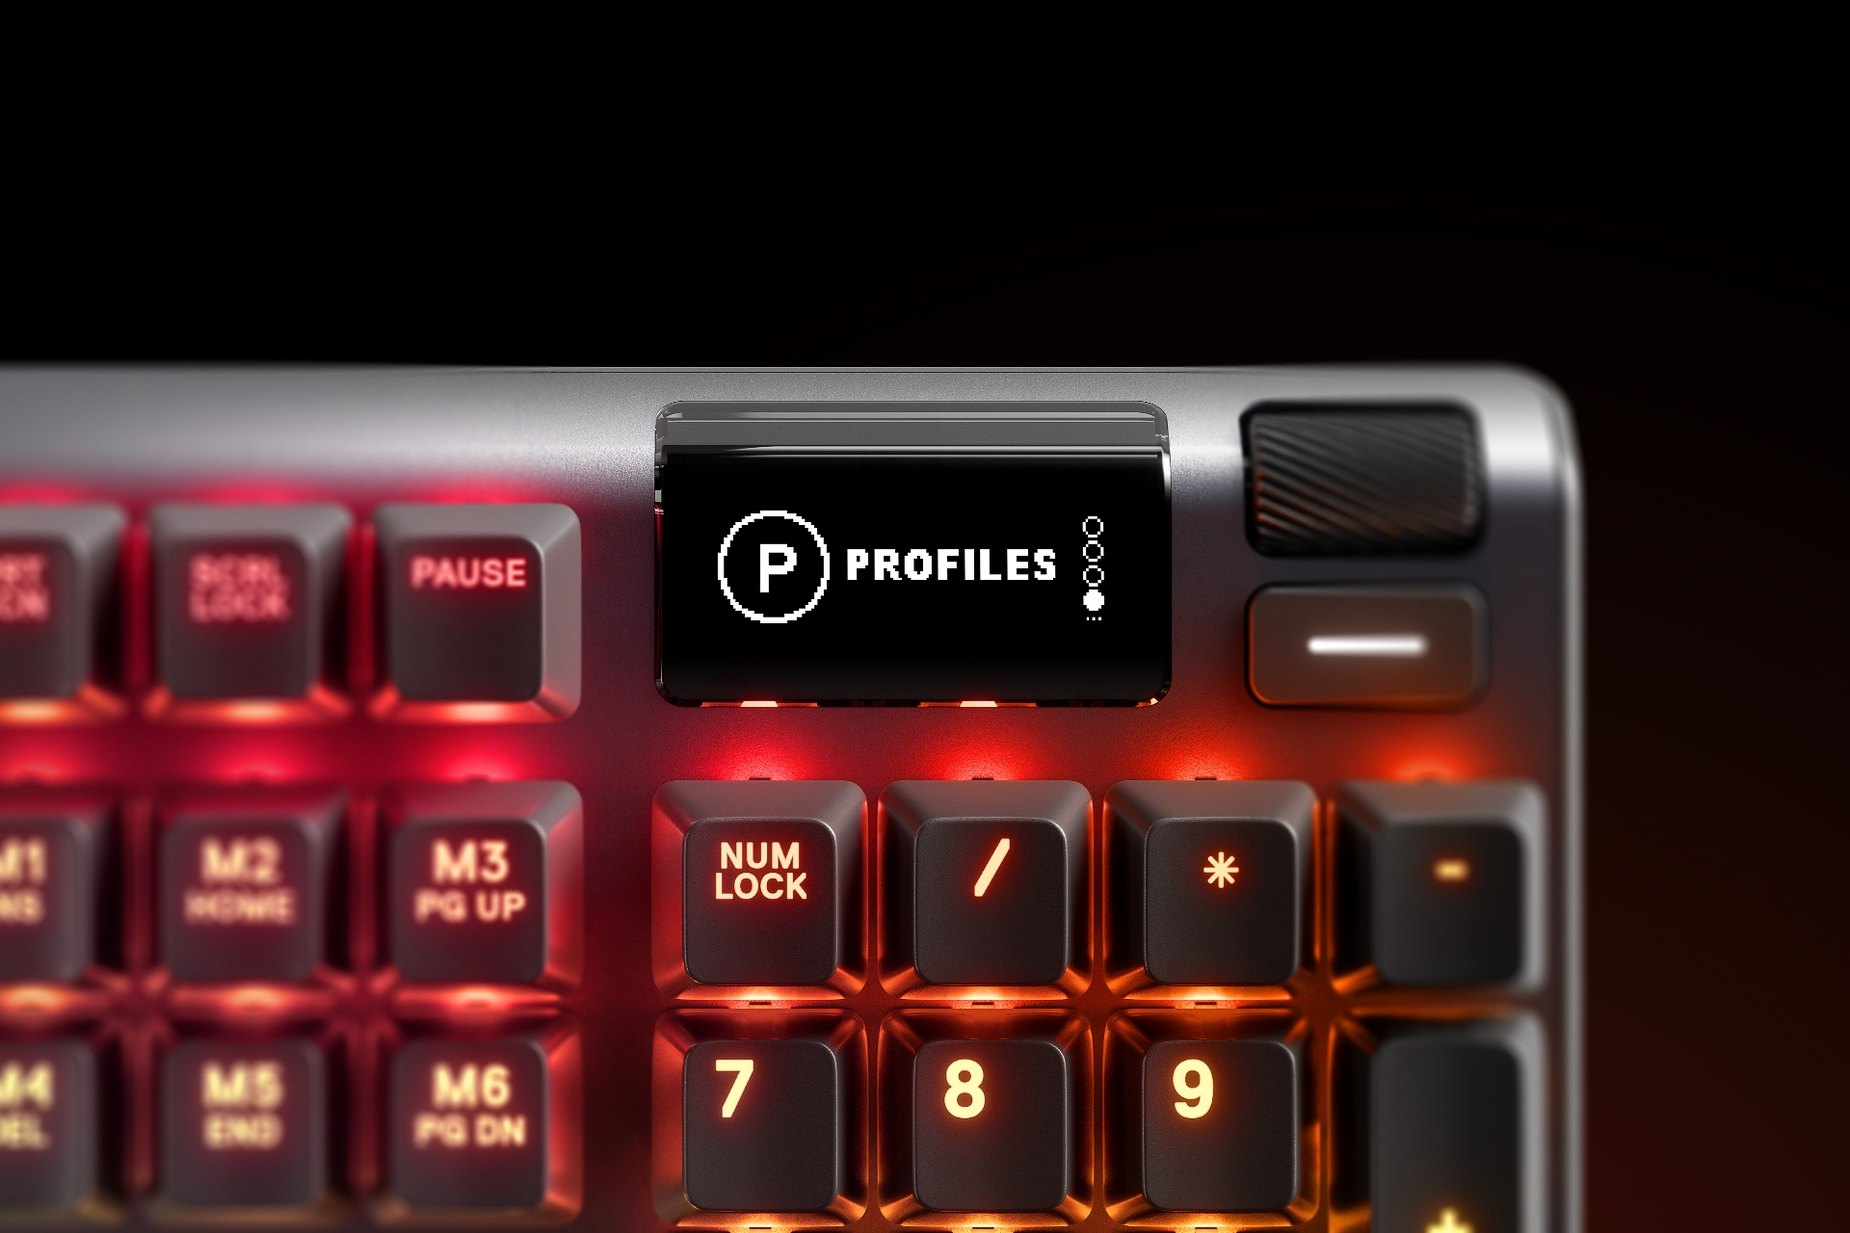 Zoomed in view of the multimedia and settings controls/volume roller on the French-Apex 7 (Red Switch) gaming keyboard